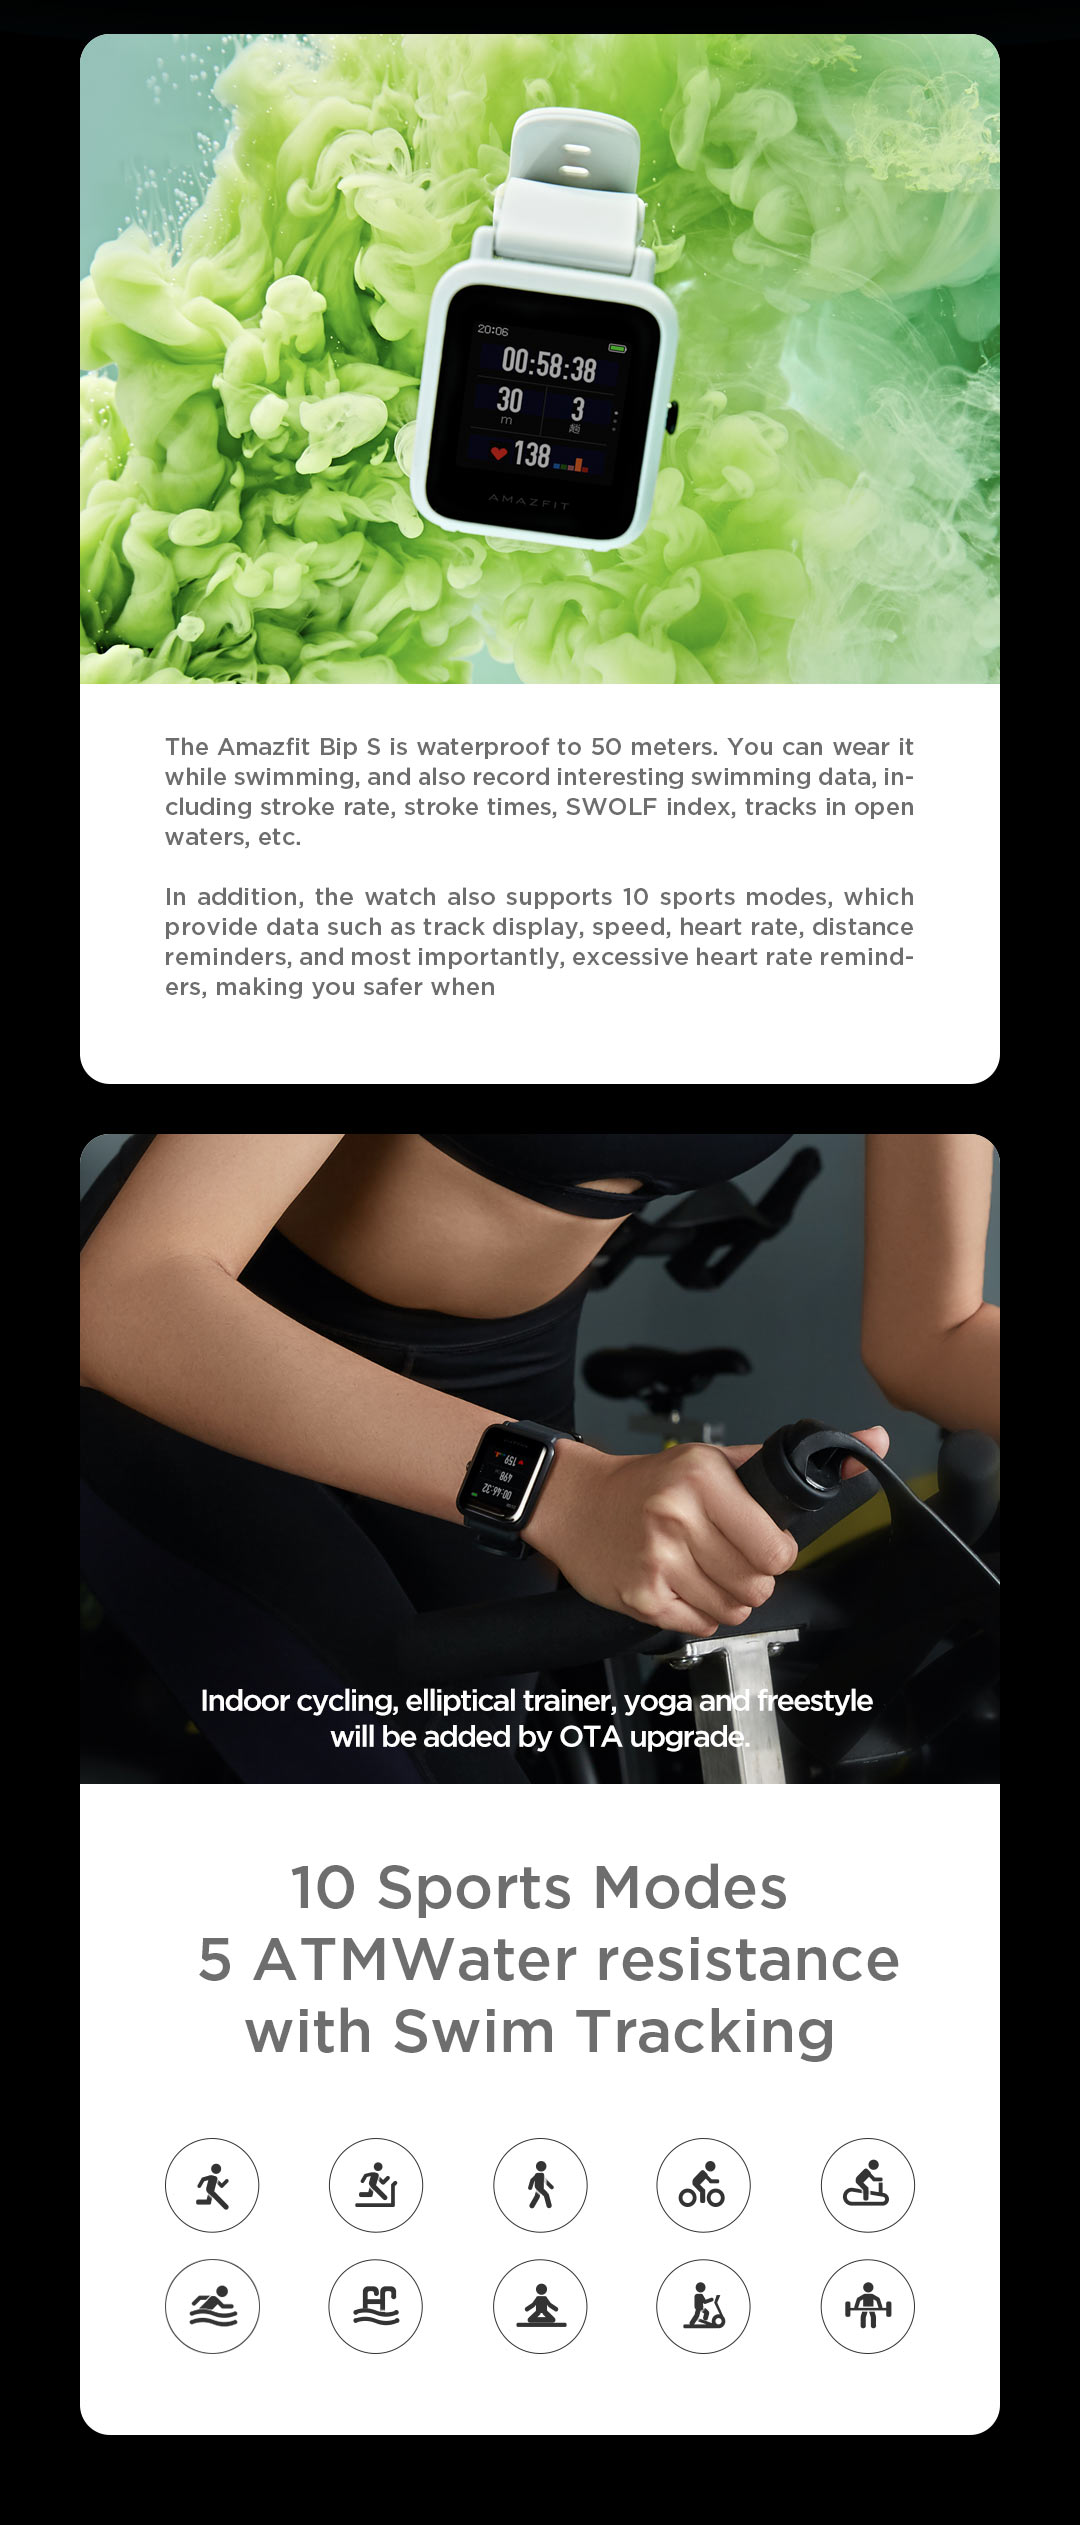 Haf3c62843f894b1280b45fbdb30fba5fs In Stock 2020 Global Amazfit Bip S Smartwatch 5ATM waterproof built in GPS GLONASS Smart Watch for Android iOS Phone